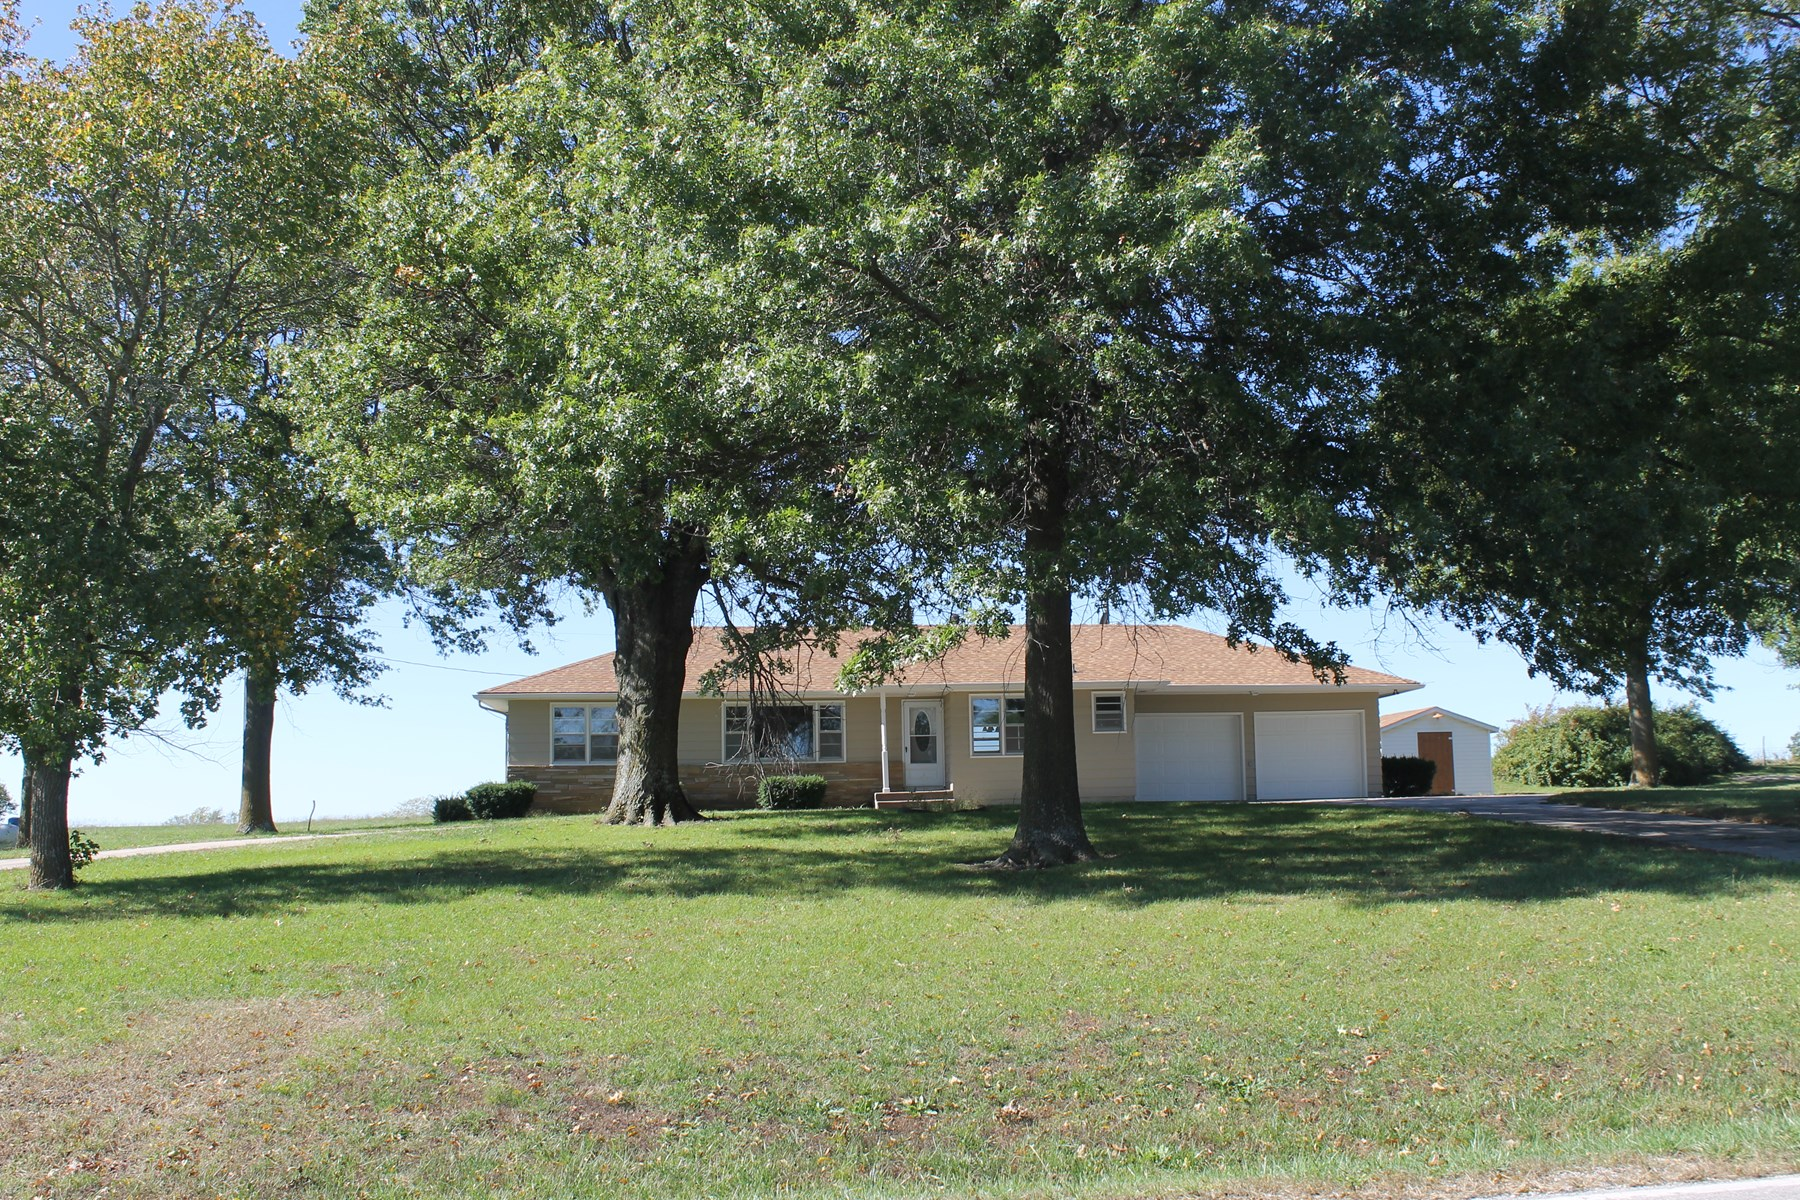 CAMERON MO REMODELED HOME FOR SALE - NEW REDUCED PRICE!